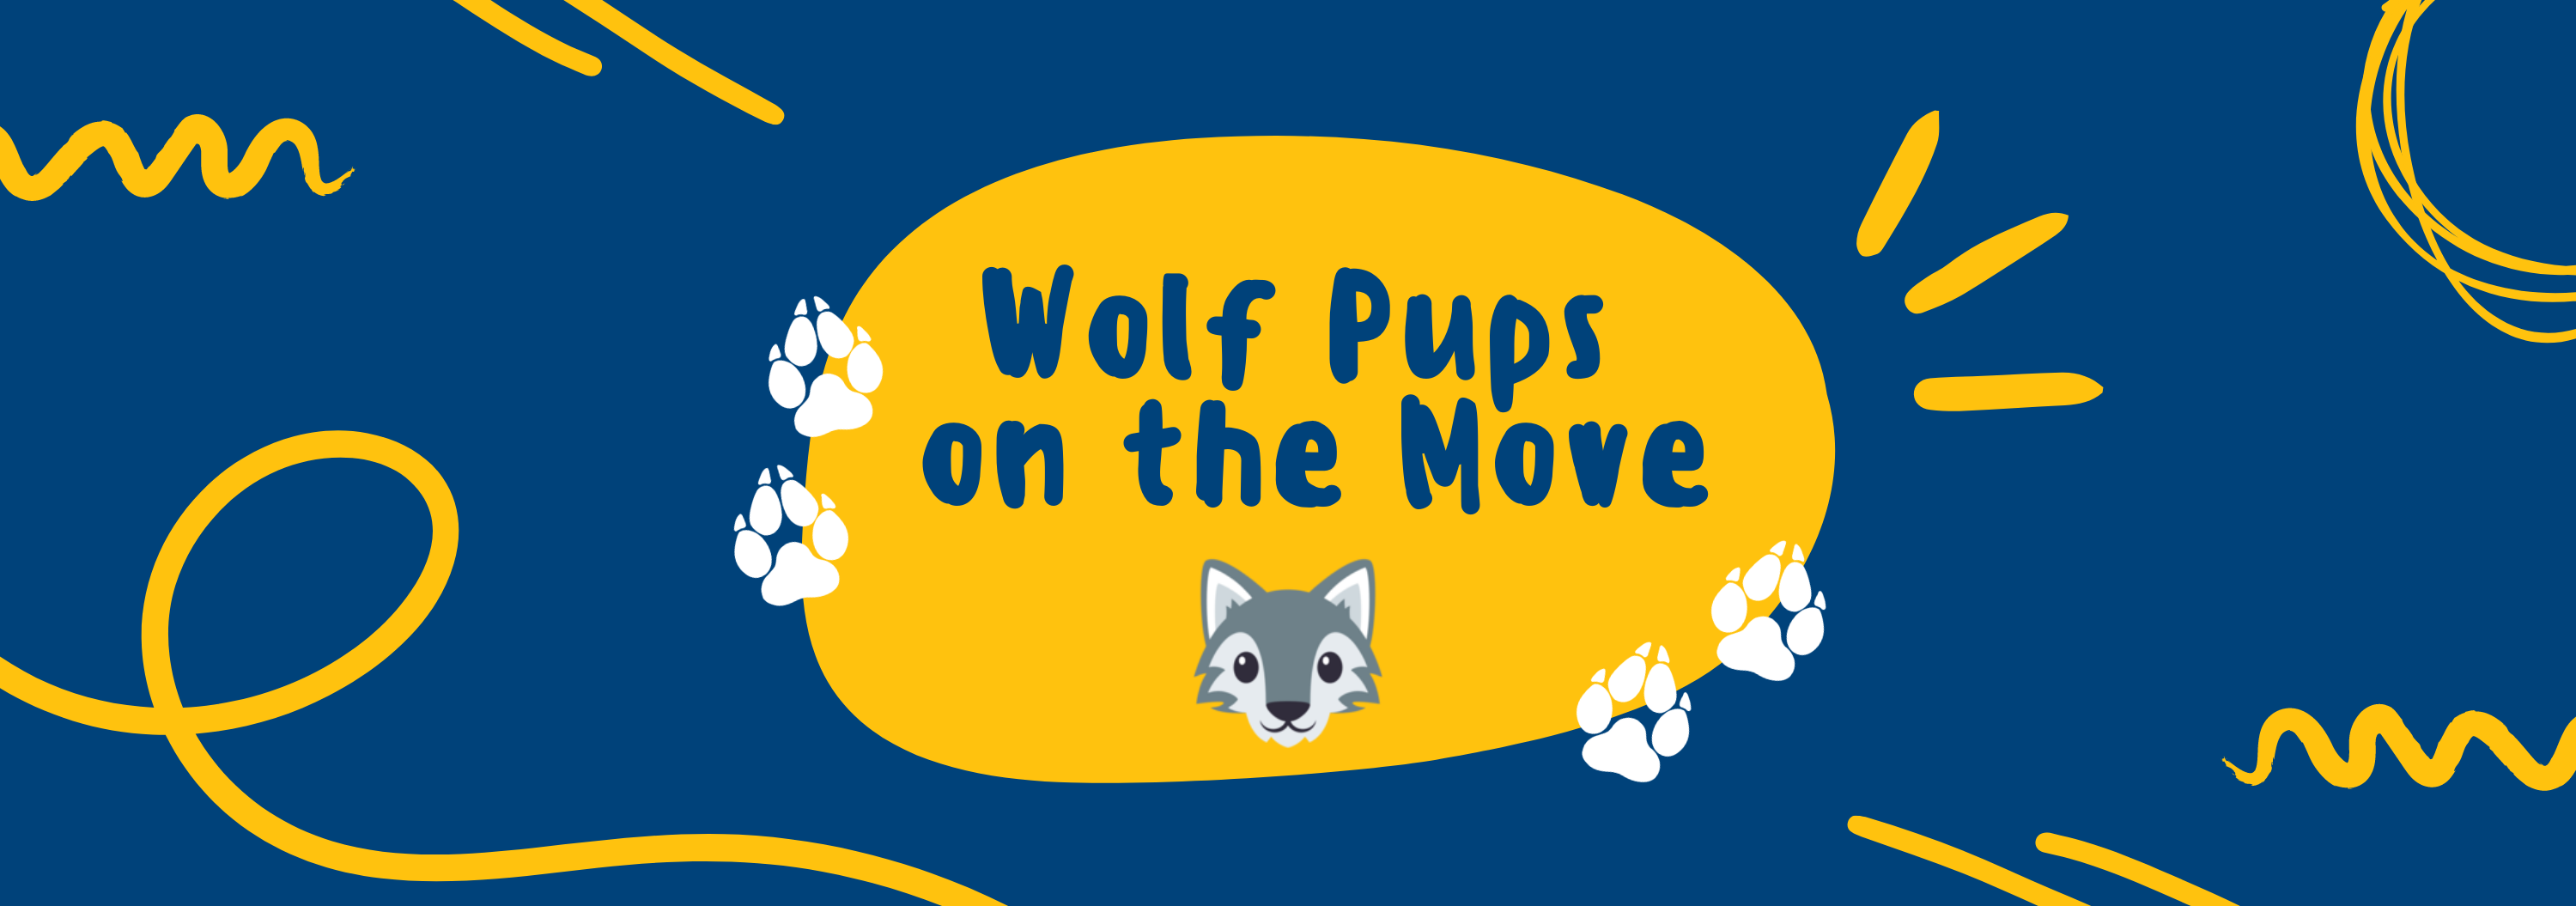 "Blue and Yellow images that says ""Wolf Pups on the Move"""